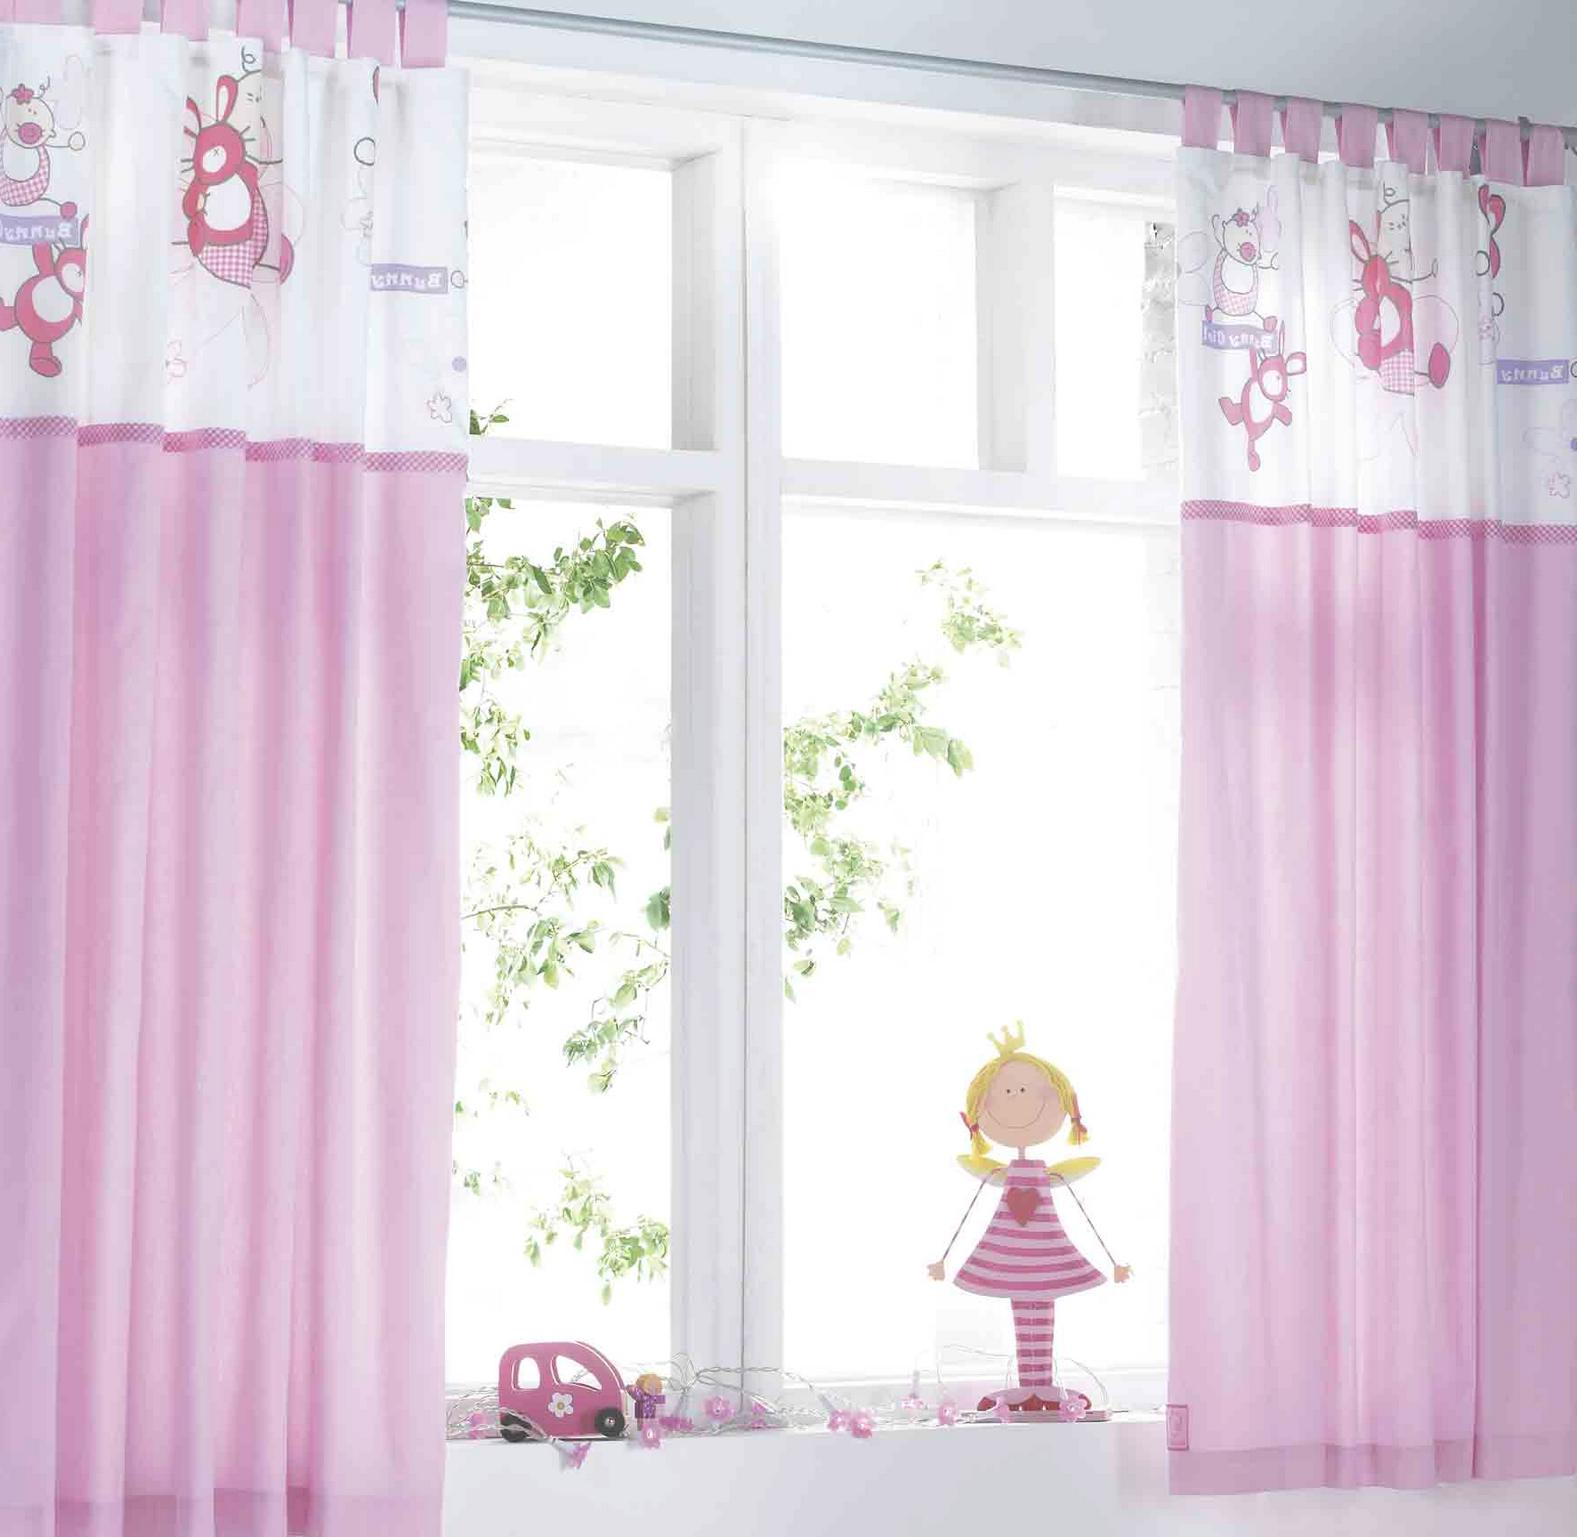 Stunning Kids Room. Bee Motive Kids Room Curtains For Girl With White And Much kids bedroom curtains